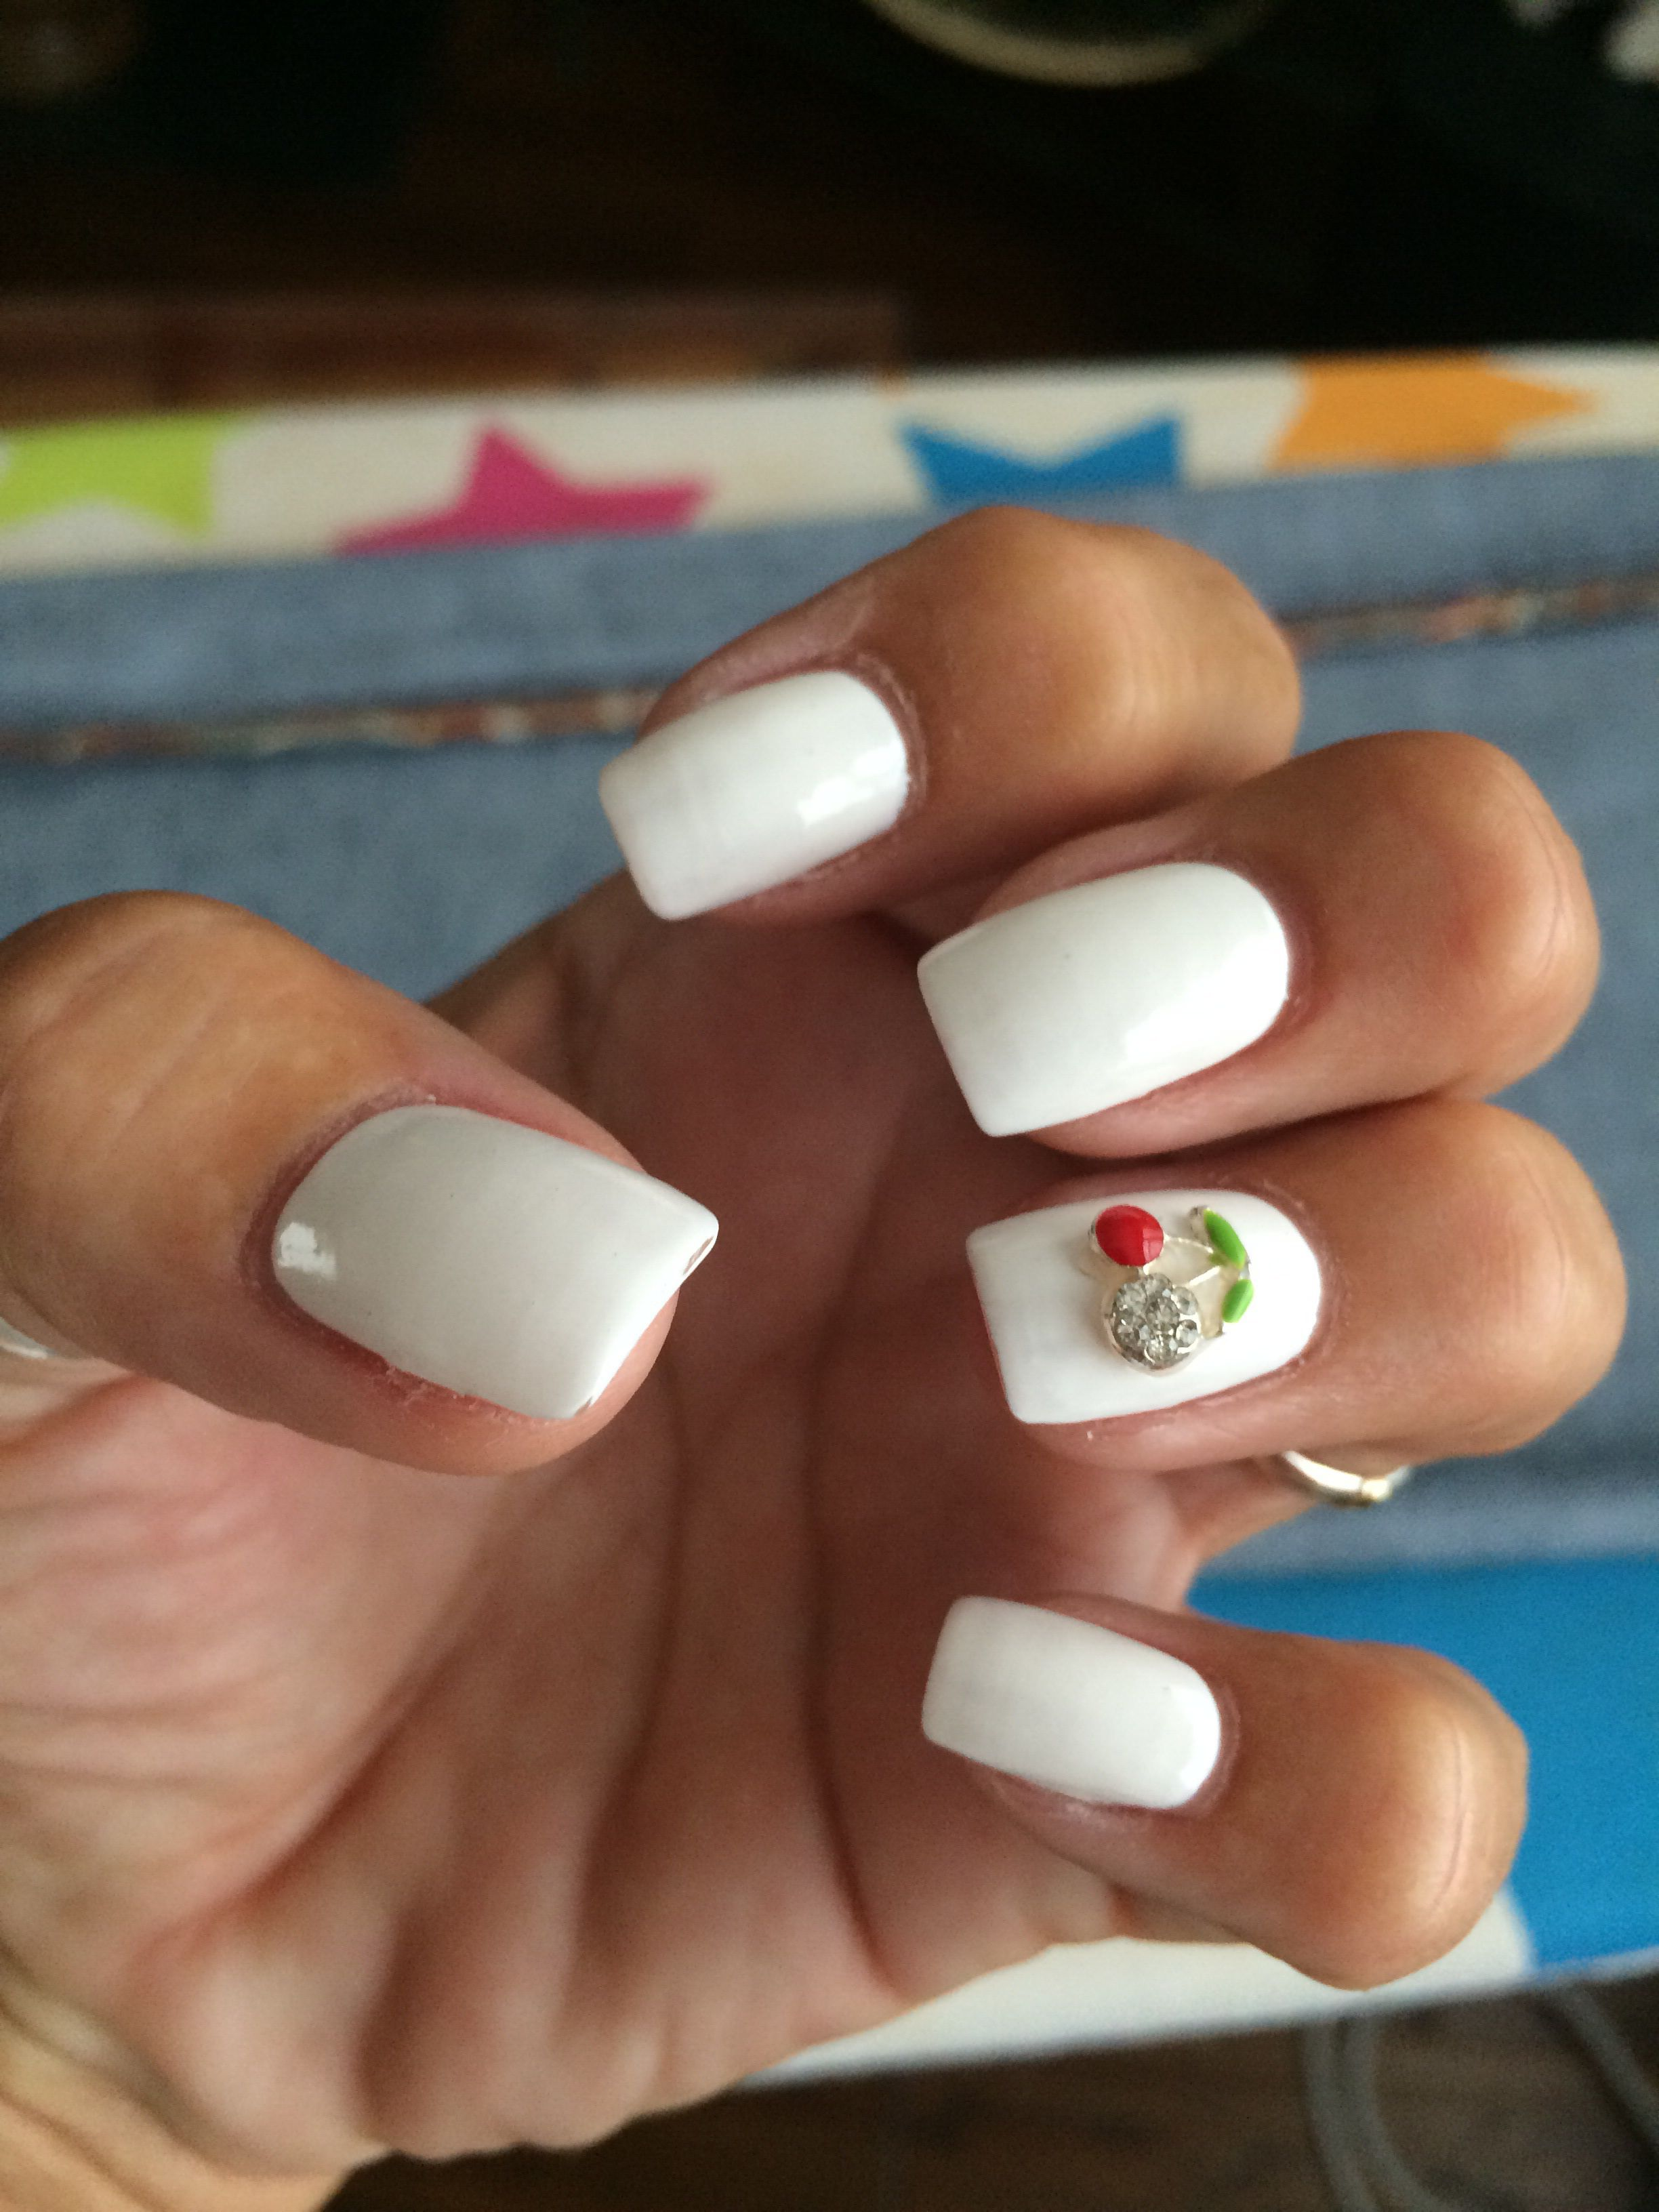 Popular fashion nails uxbridge - Created By Diamond Nails In Uxbridge With A Jewelled Cherry On The Top